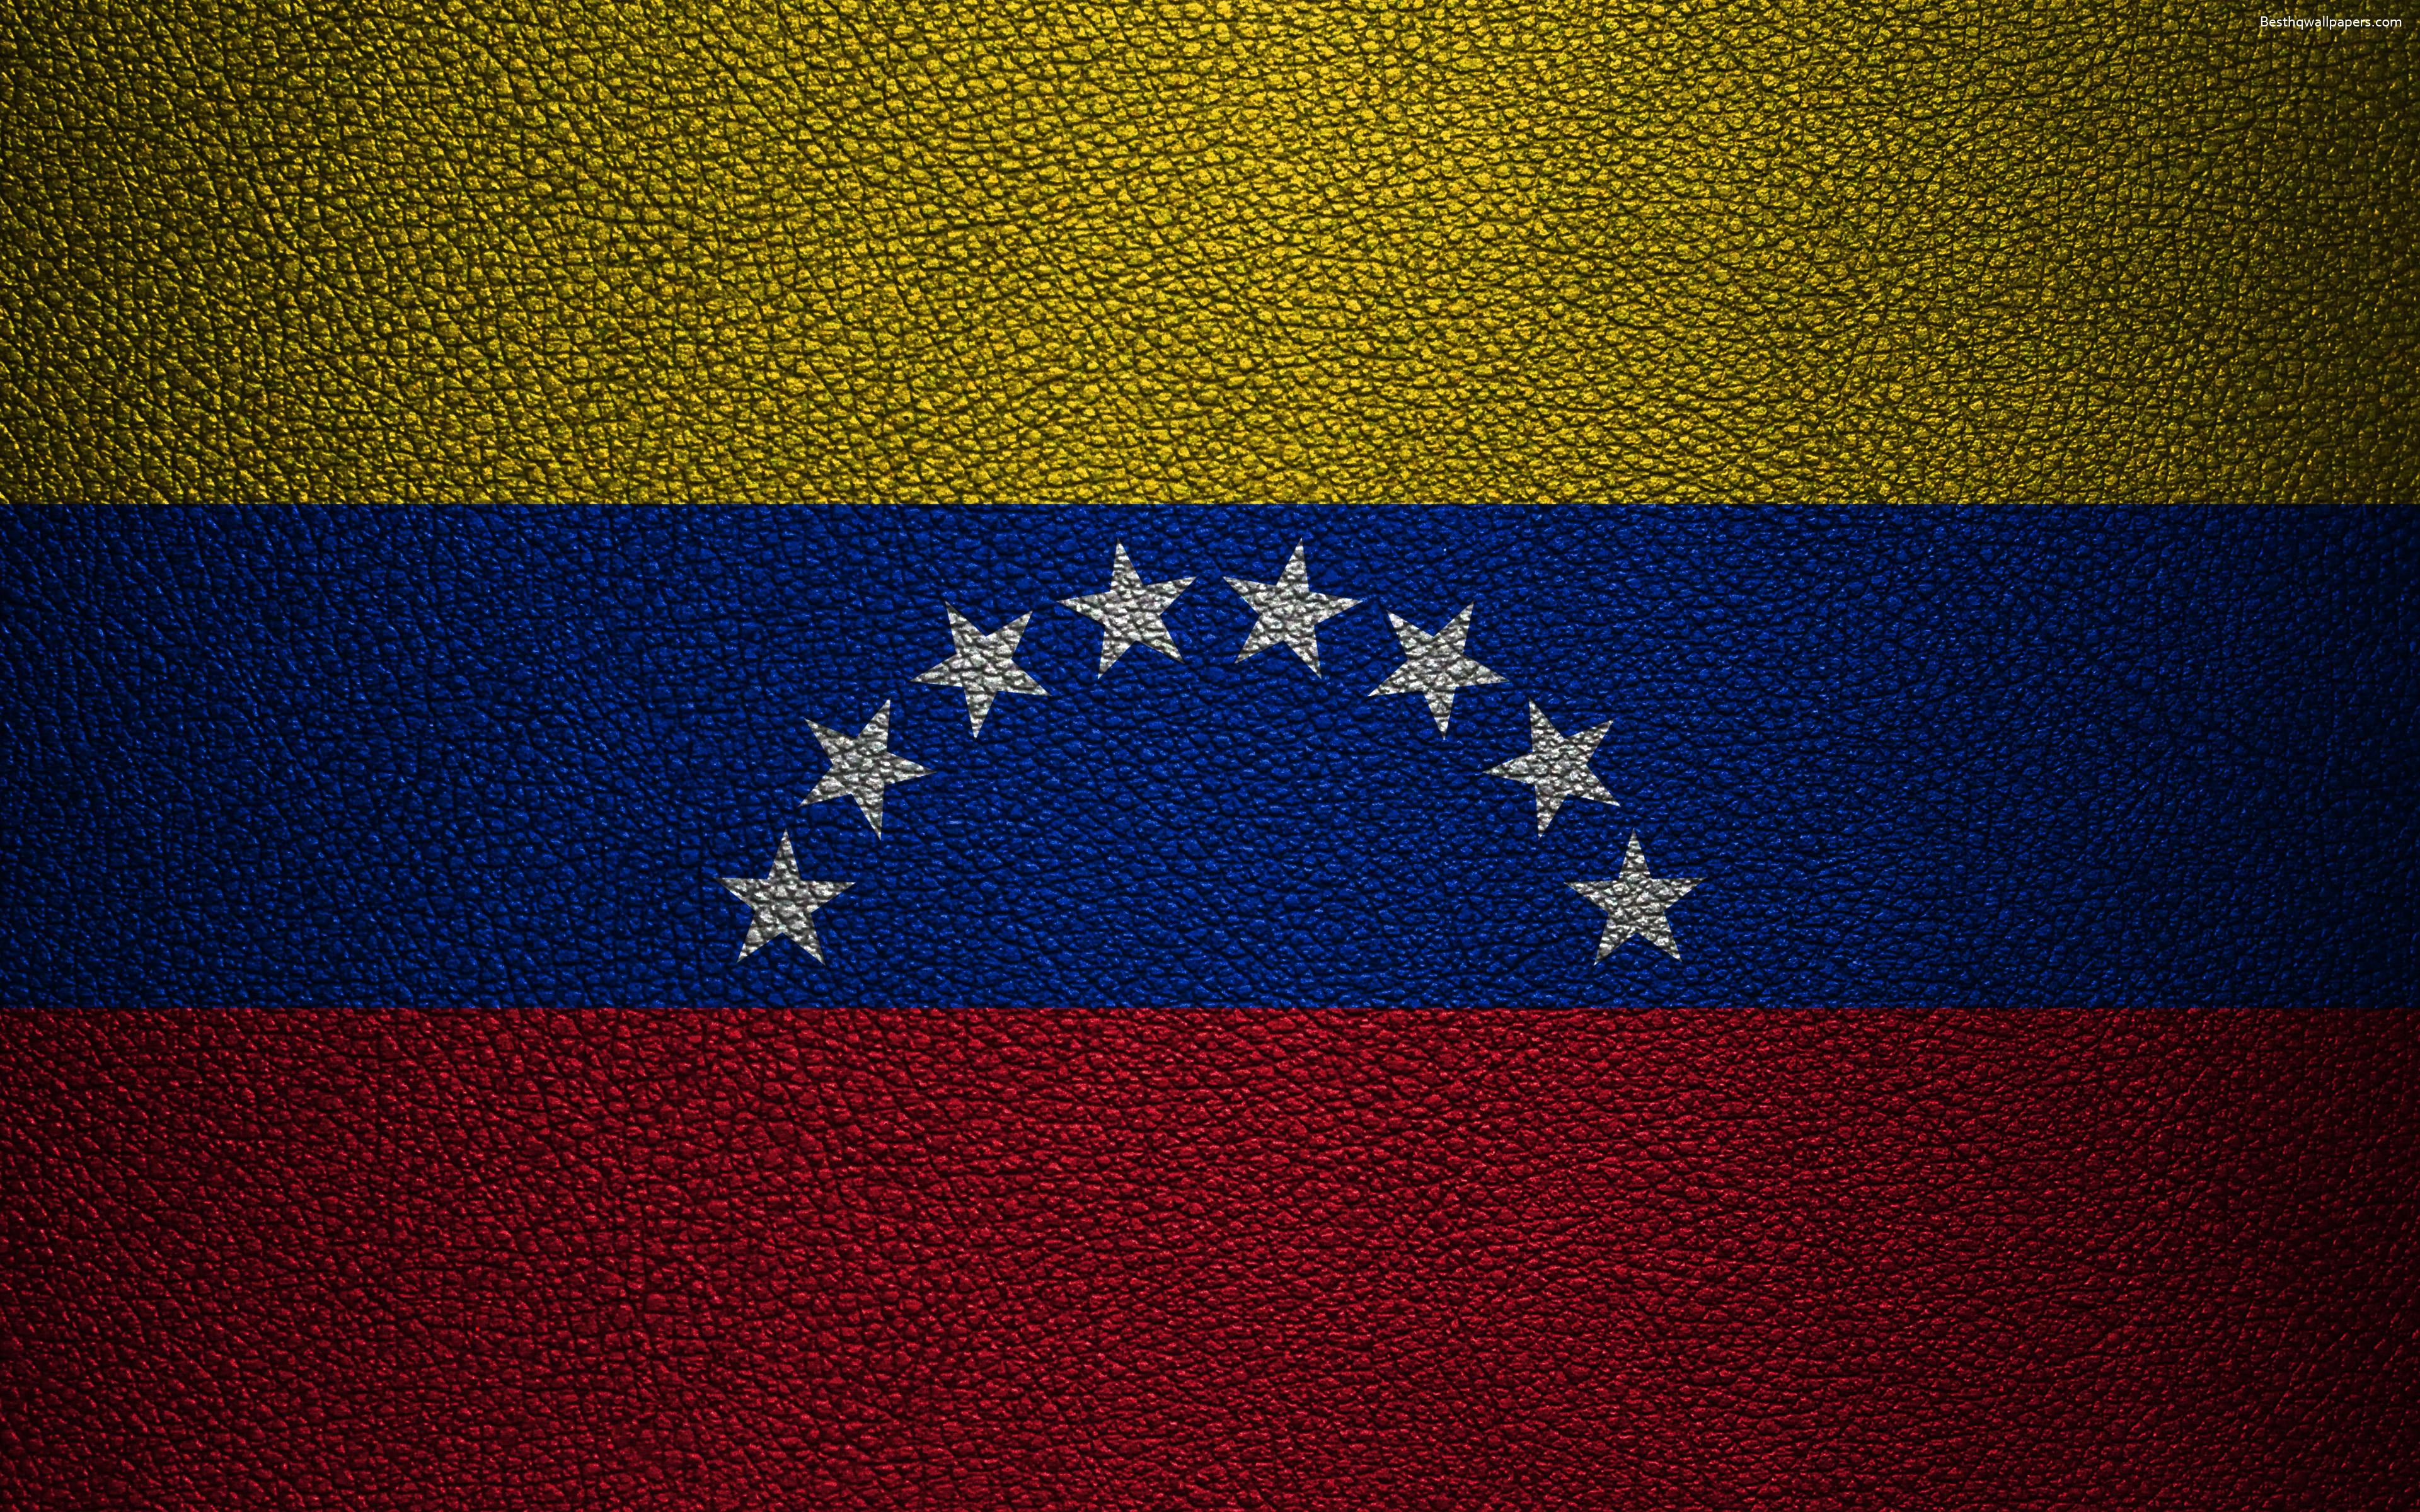 Download wallpapers Flag of Venezuela, 4k, leather texture ...